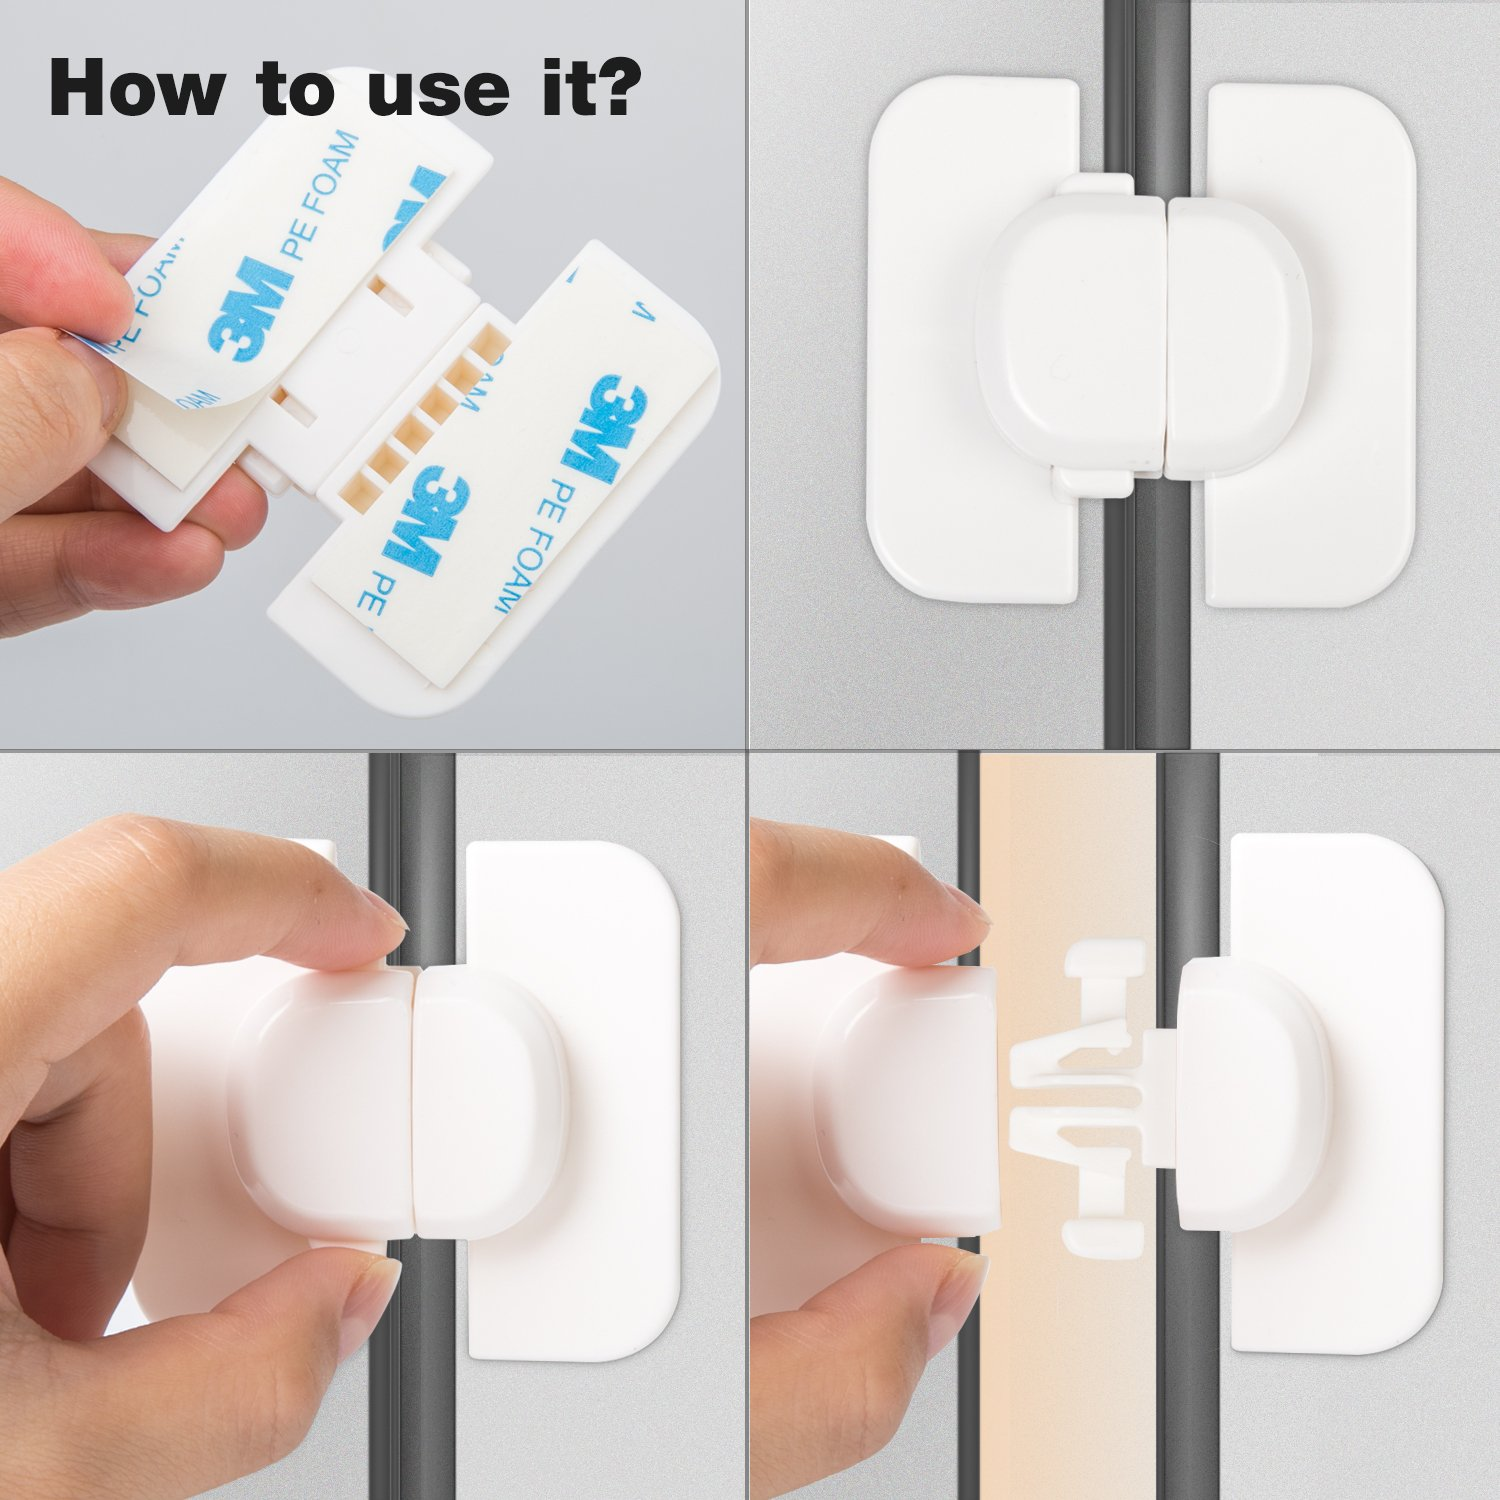 veecom Child Safety Locks for Refrigerators Doors Cabinet Drawers 6 Pack Baby Proof Locks (Upgrade) by veecom (Image #4)